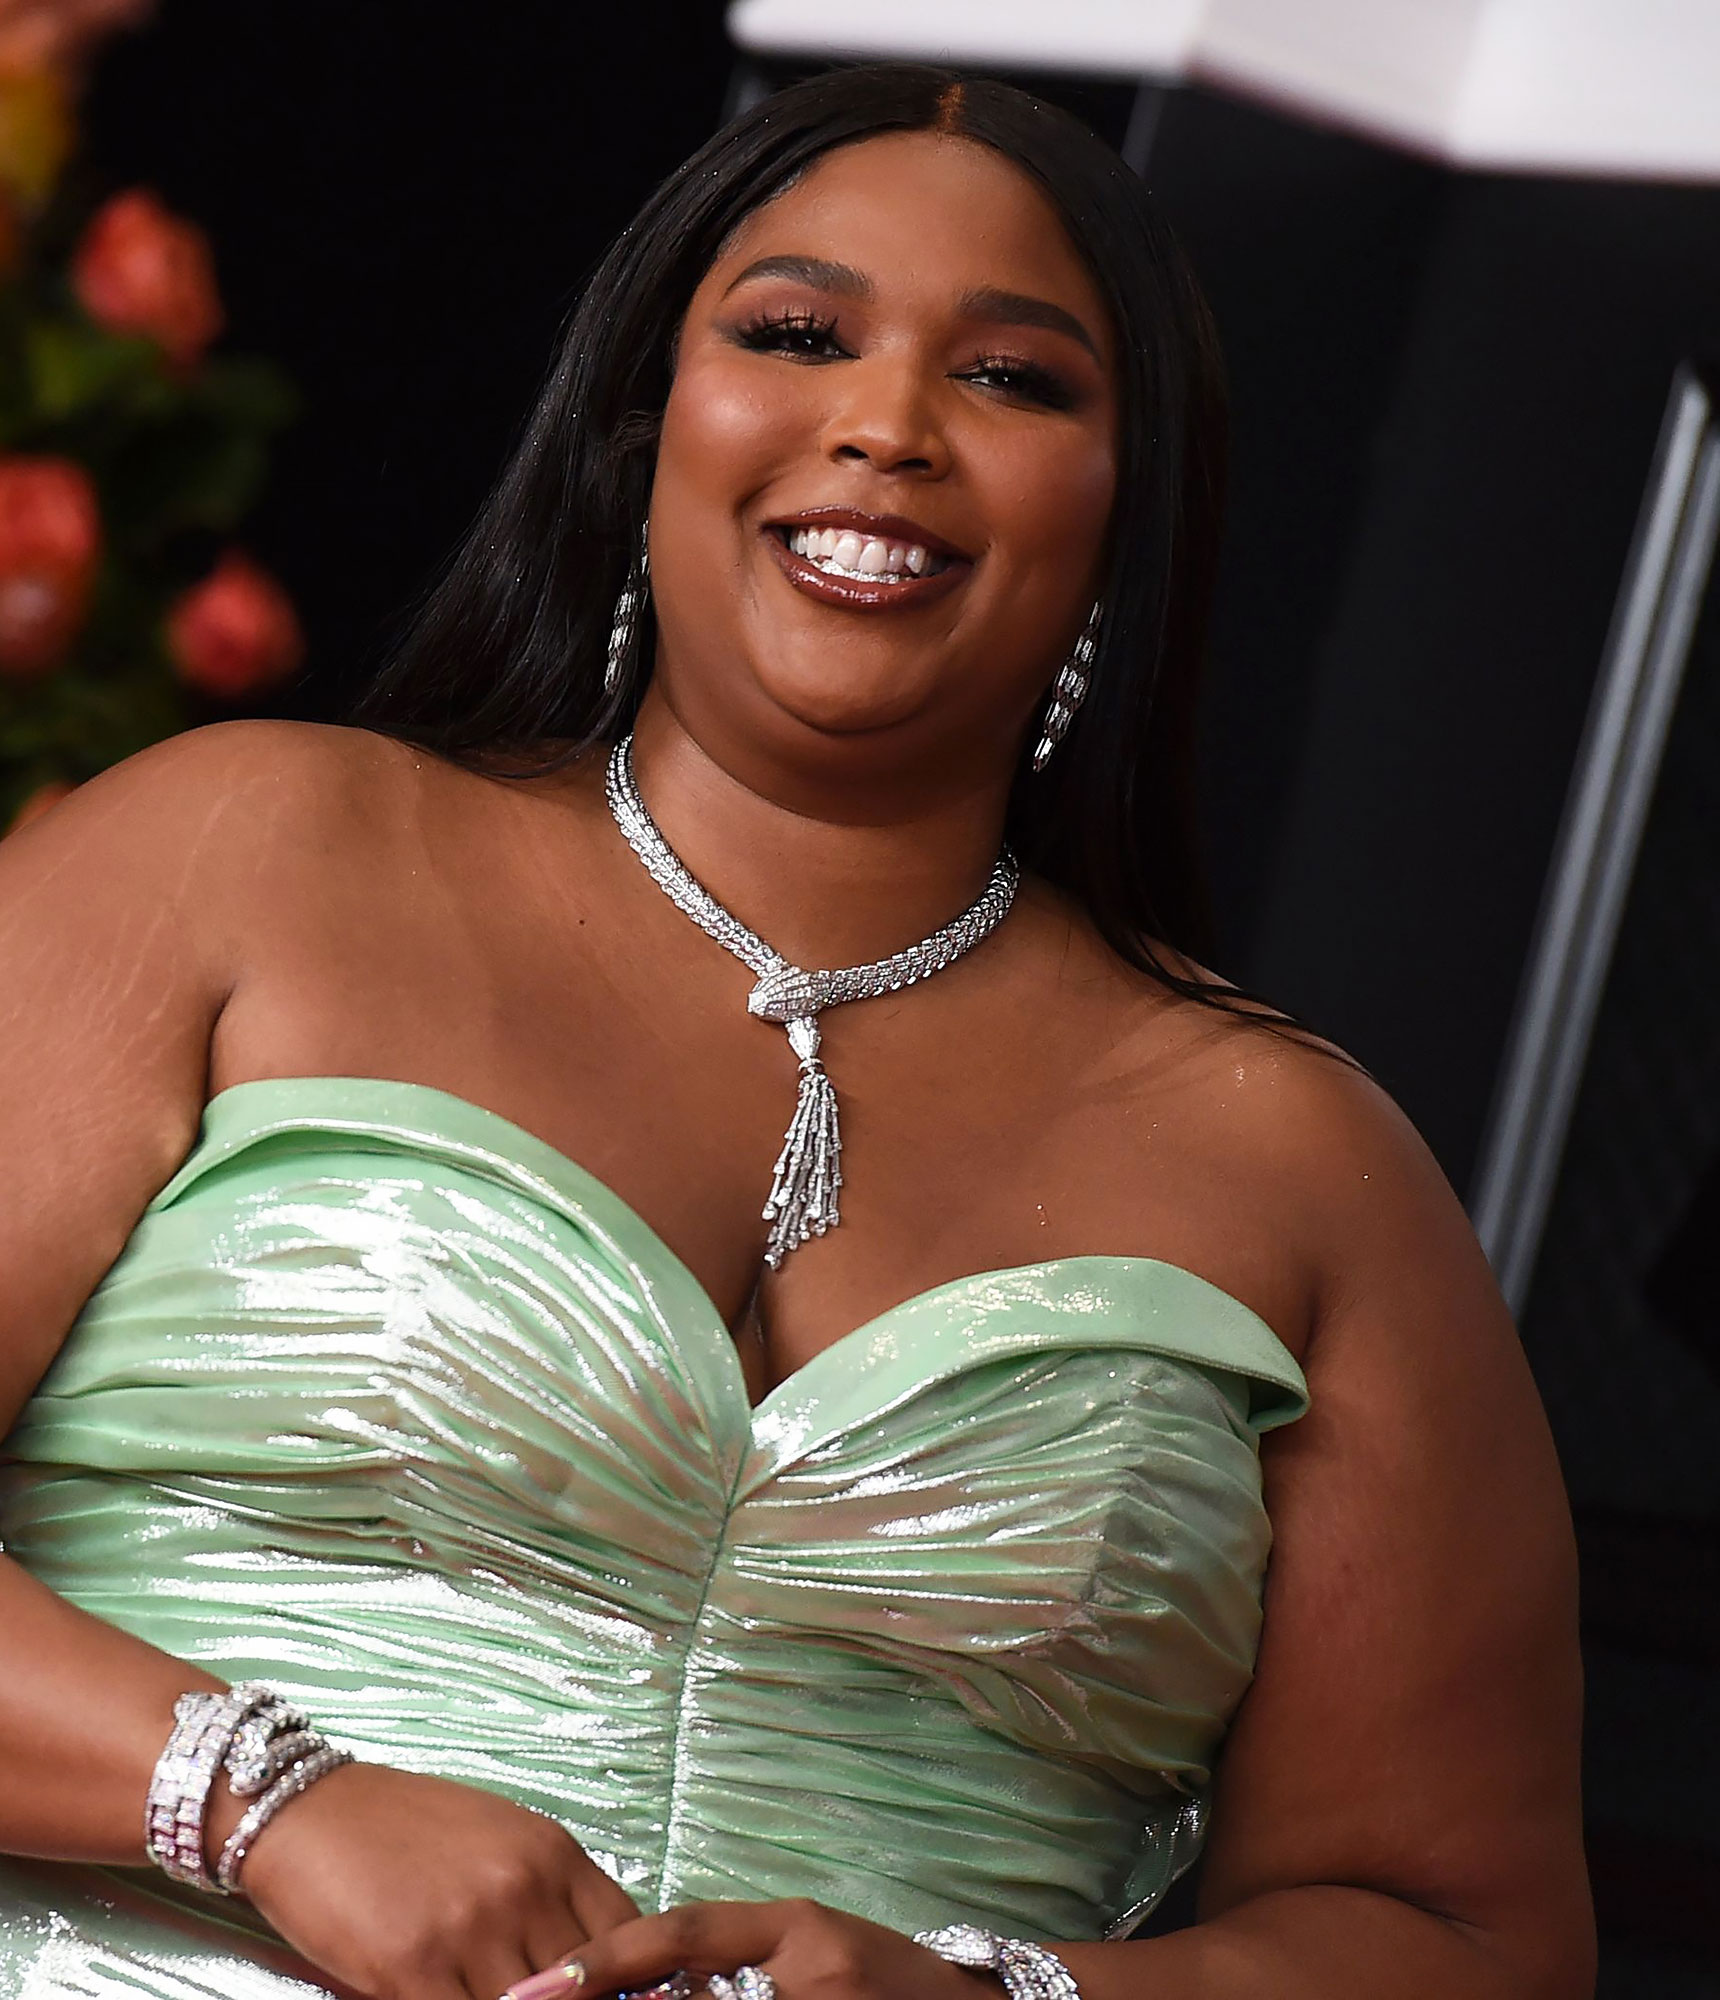 Au Natural! Lizzo Shares Unedited Nude Selfie for #DoveSelfEsteemProject